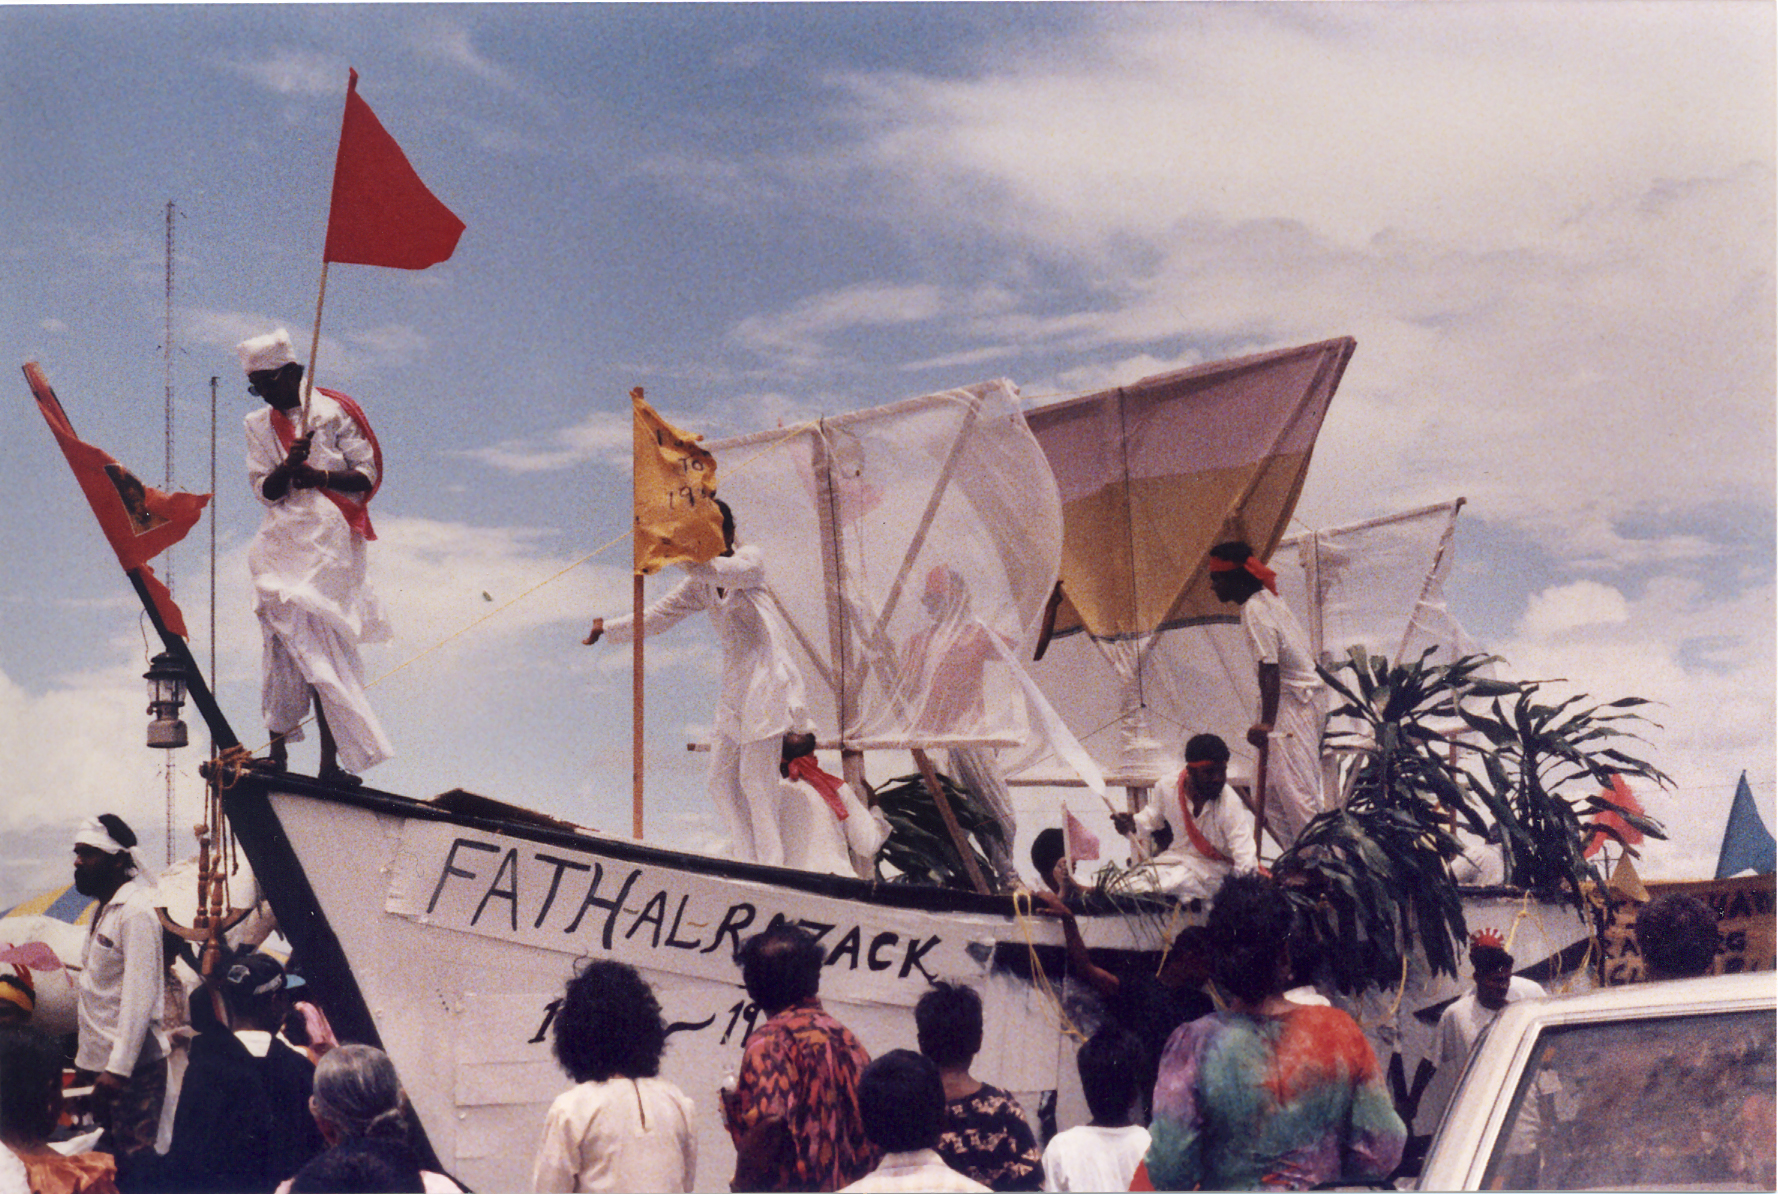 "Figure 3.: At the celebration of the 150th Anniversary of Indian Arrival in 1995, a float represented the boat Fath-al-razak (also known as ""Fatel Rozack"") that brought the first group of Indians to Trinidad. Photograph by the author."